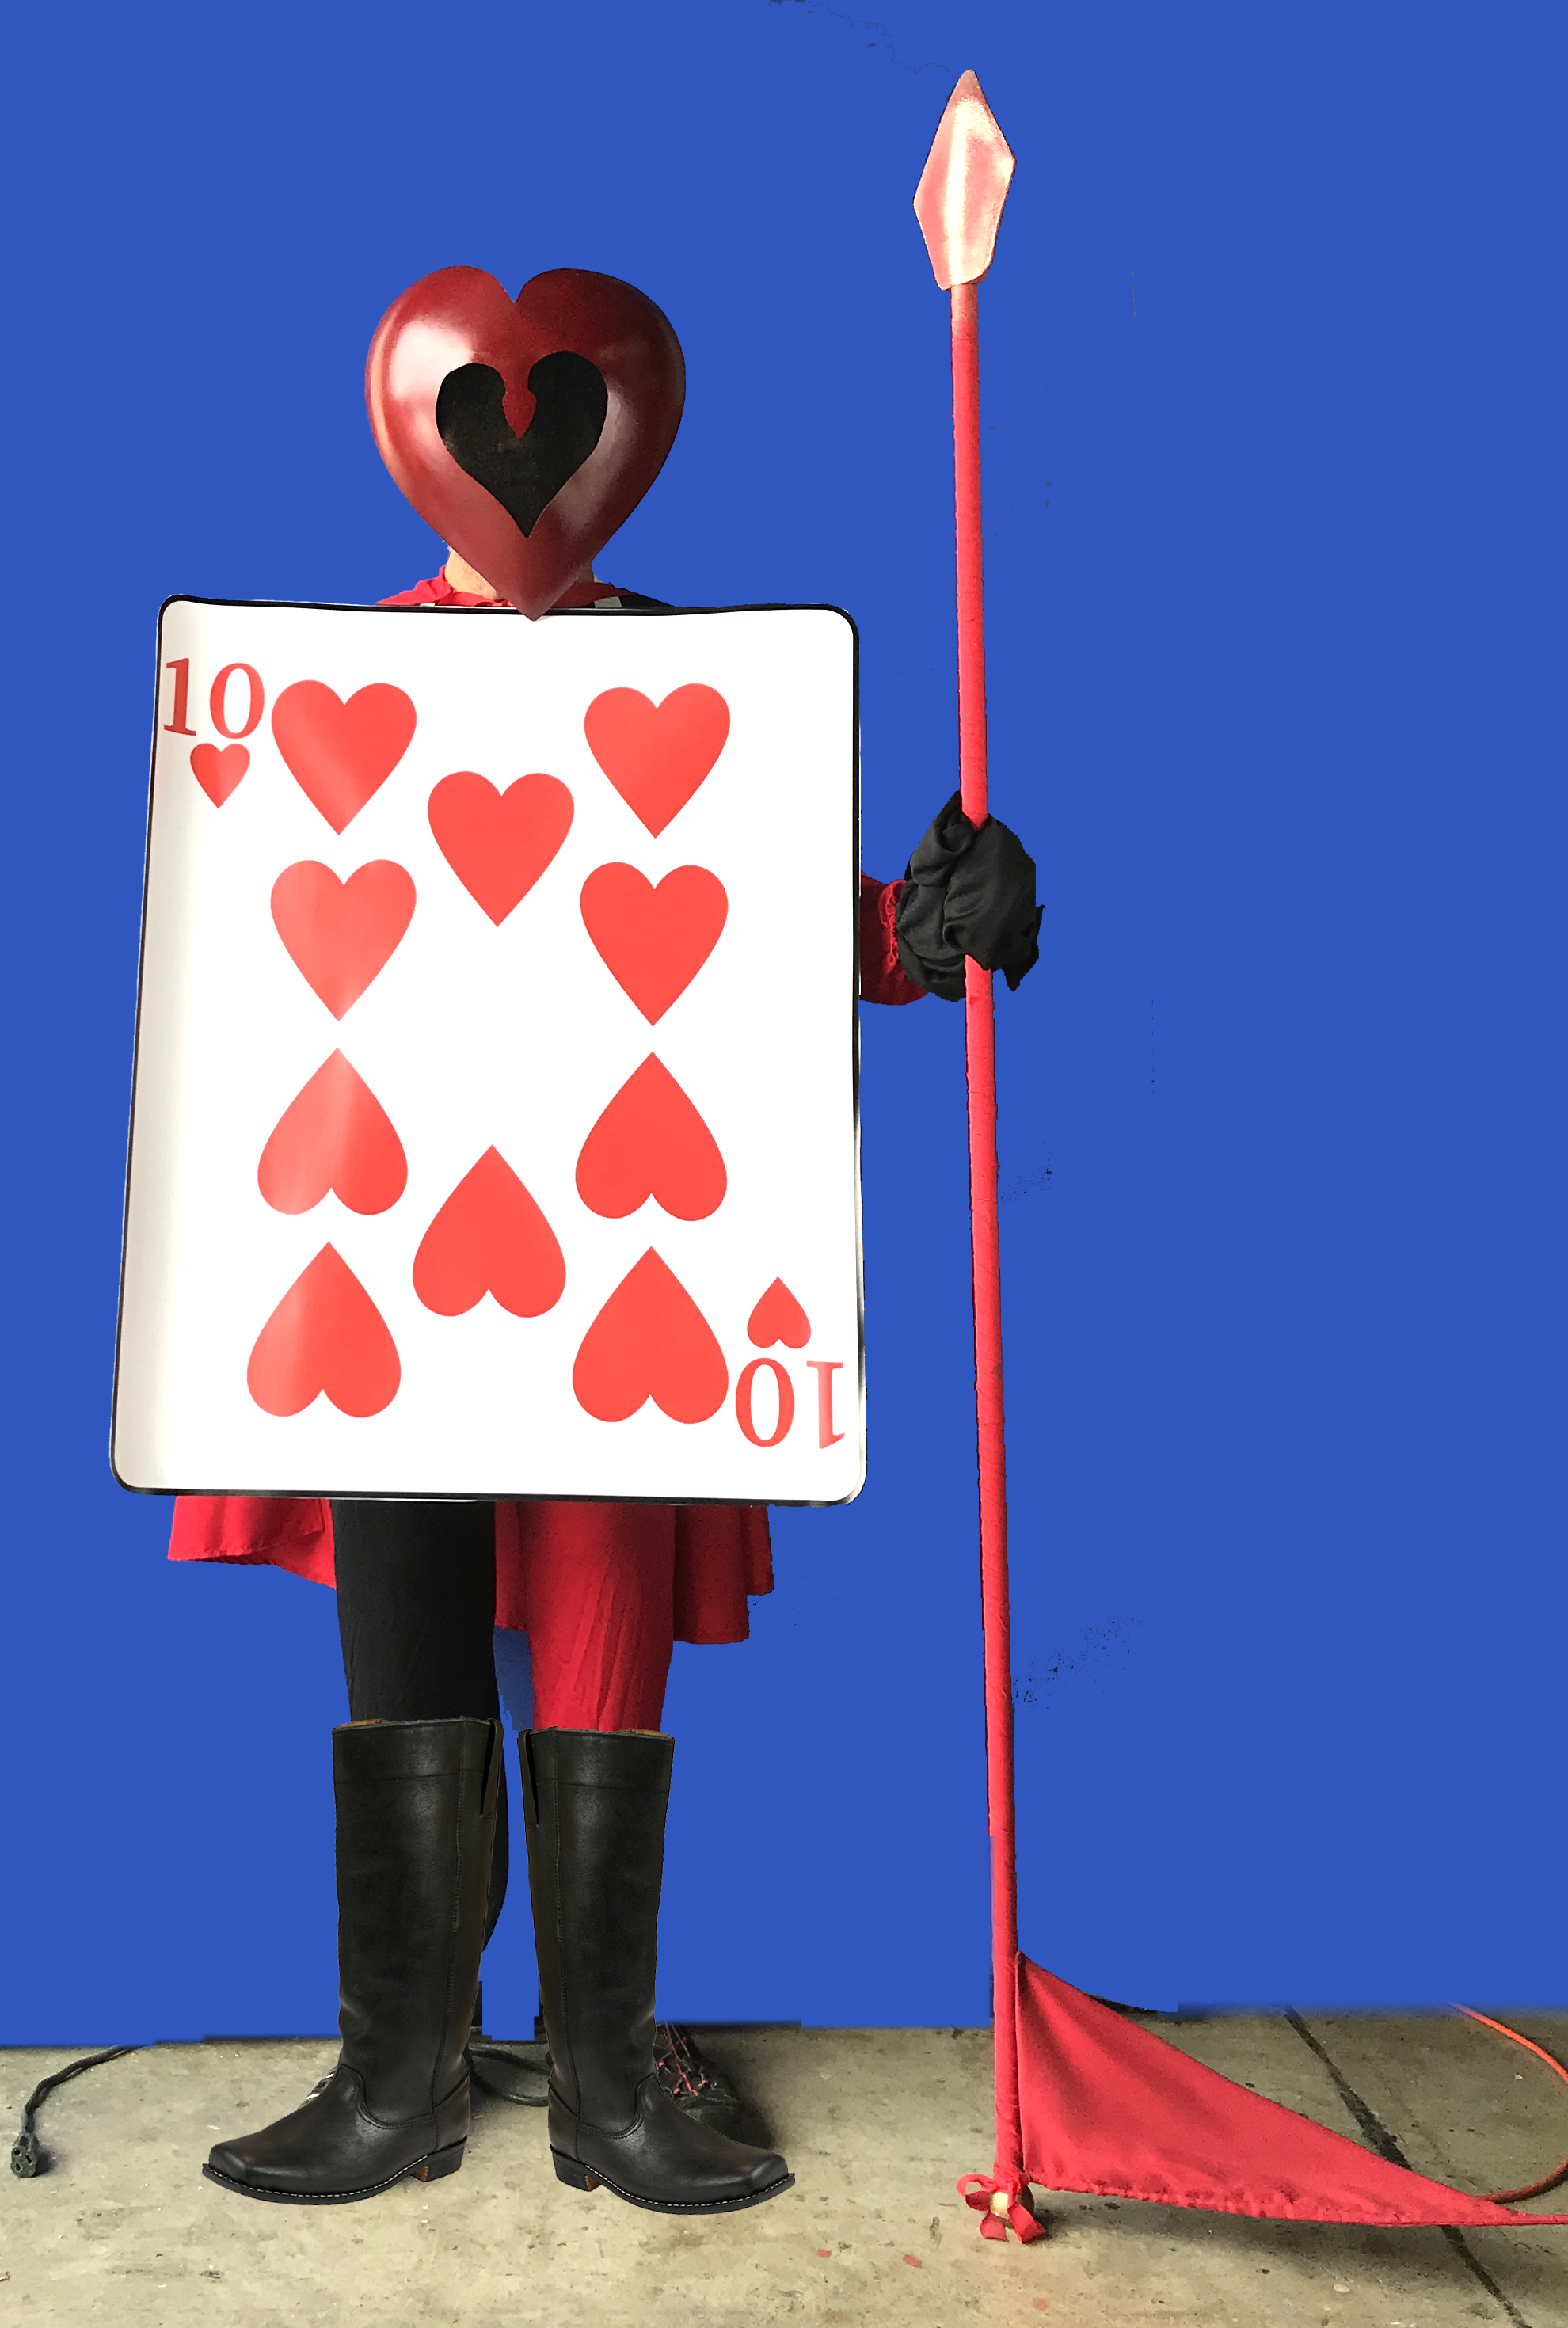 10 of Hearts Guard